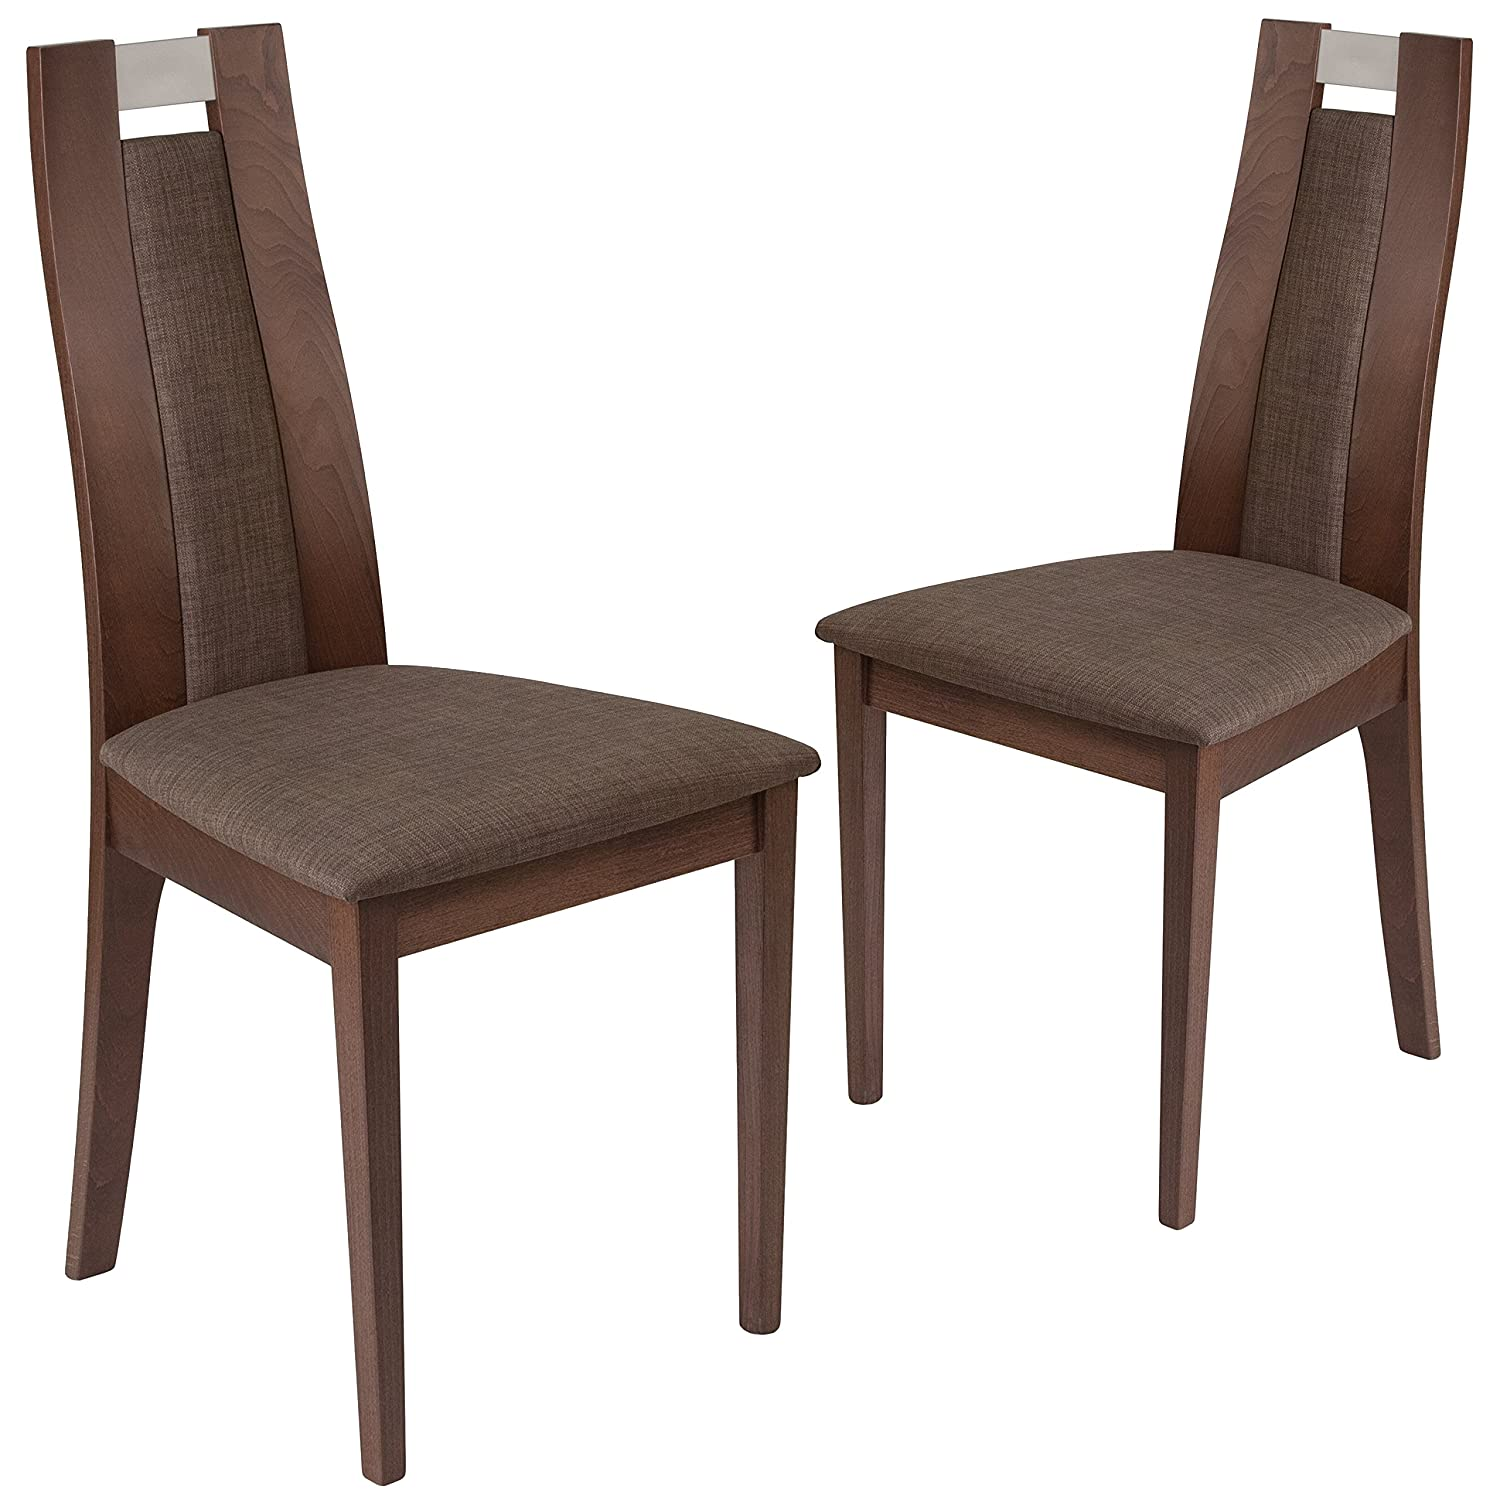 Amazon com flash furniture 2 pk quincy walnut finish wood dining chair with curved slat wood and golden honey brown fabric seat chairs